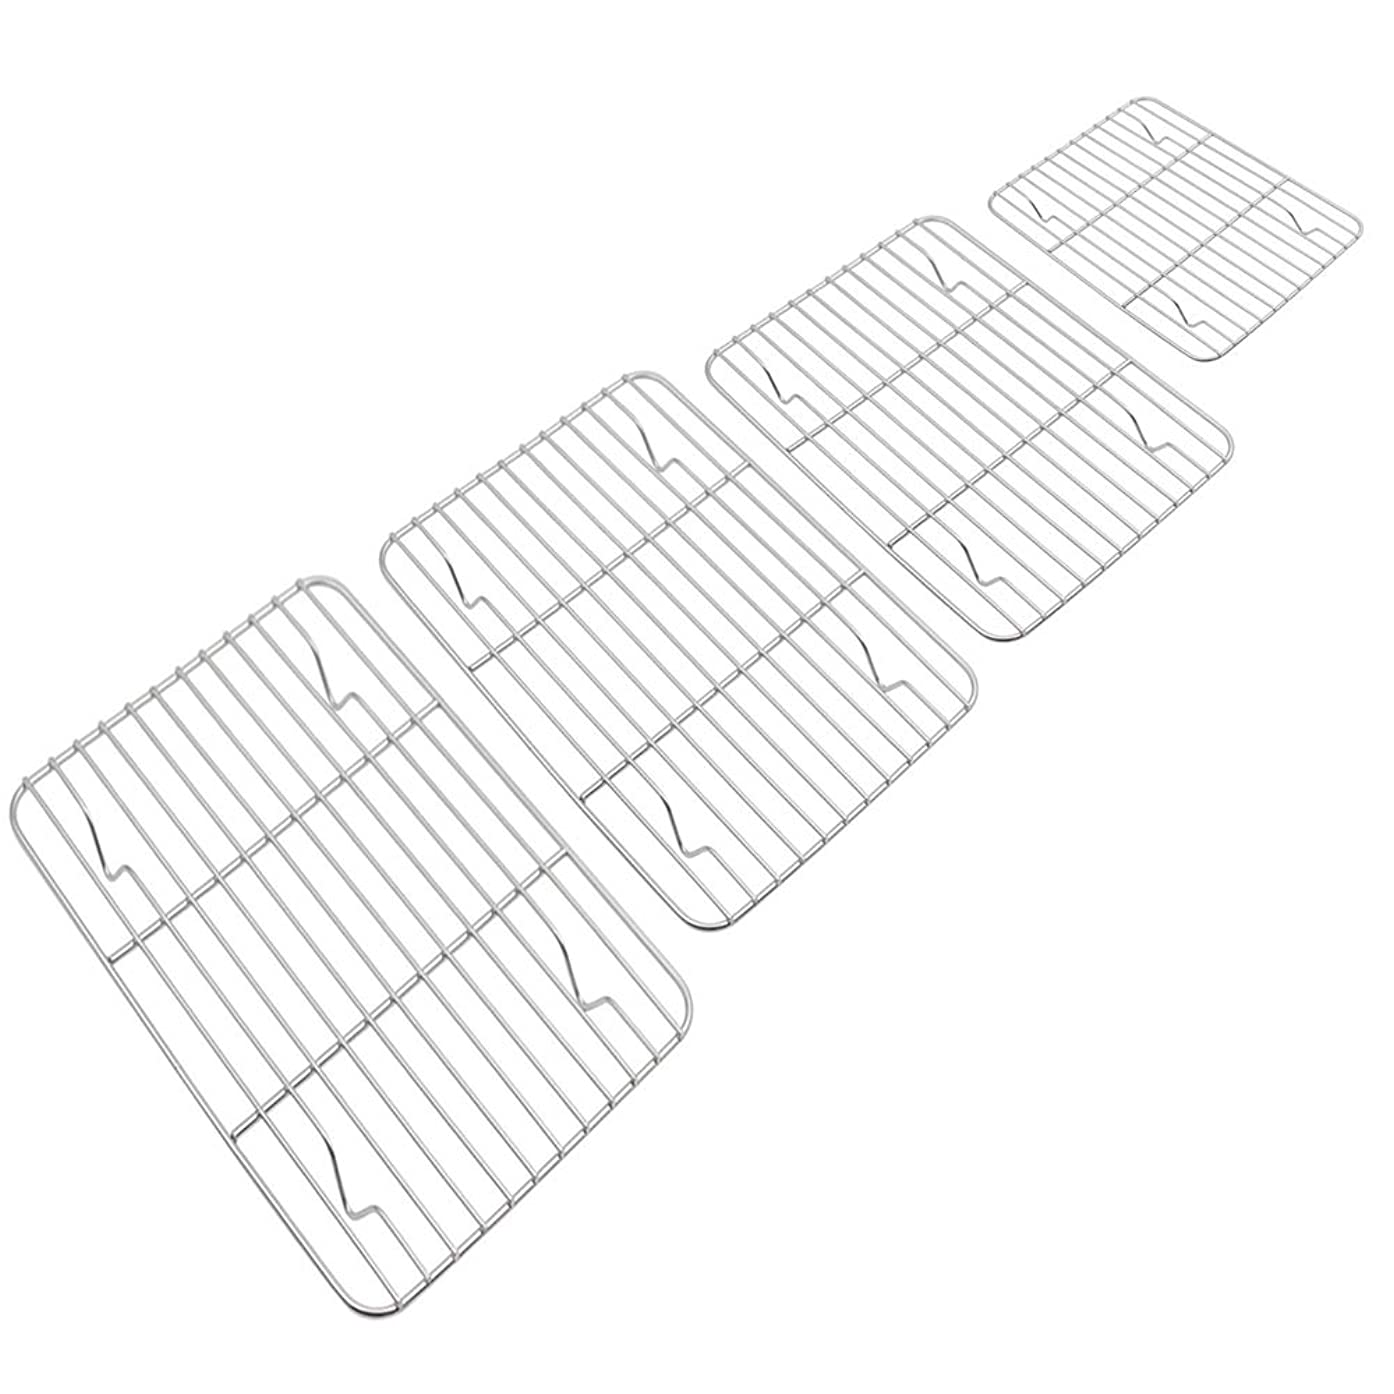 WEZVIX Stainless Steel Cooling Rack Baking Rack Wire Grill Racks for Baking Sheet Set of 4 for Cooking Baking Cooling Dishwasher Safe & Rust free